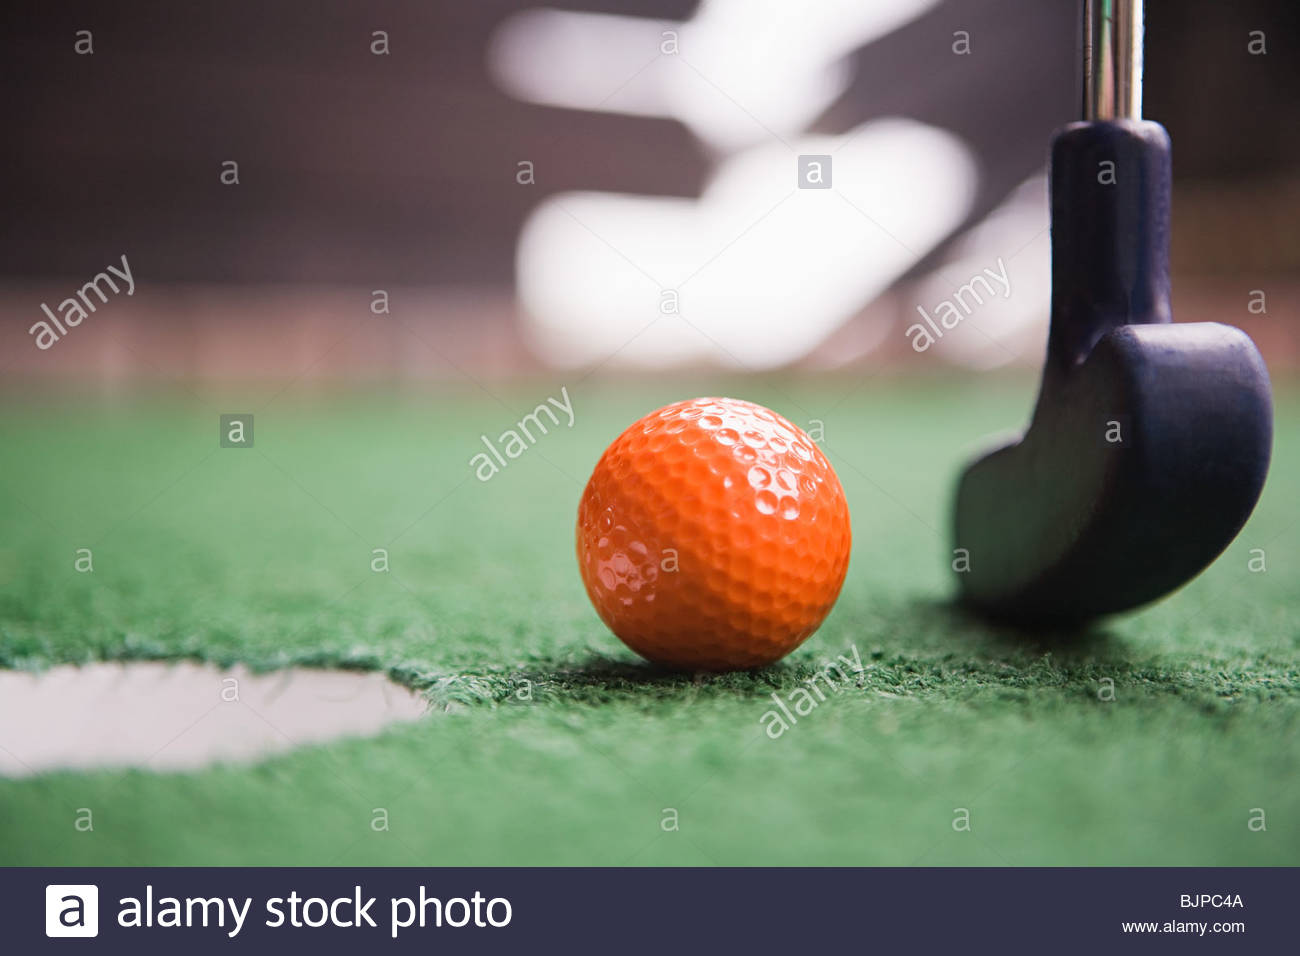 Miniature golf - Stock Image